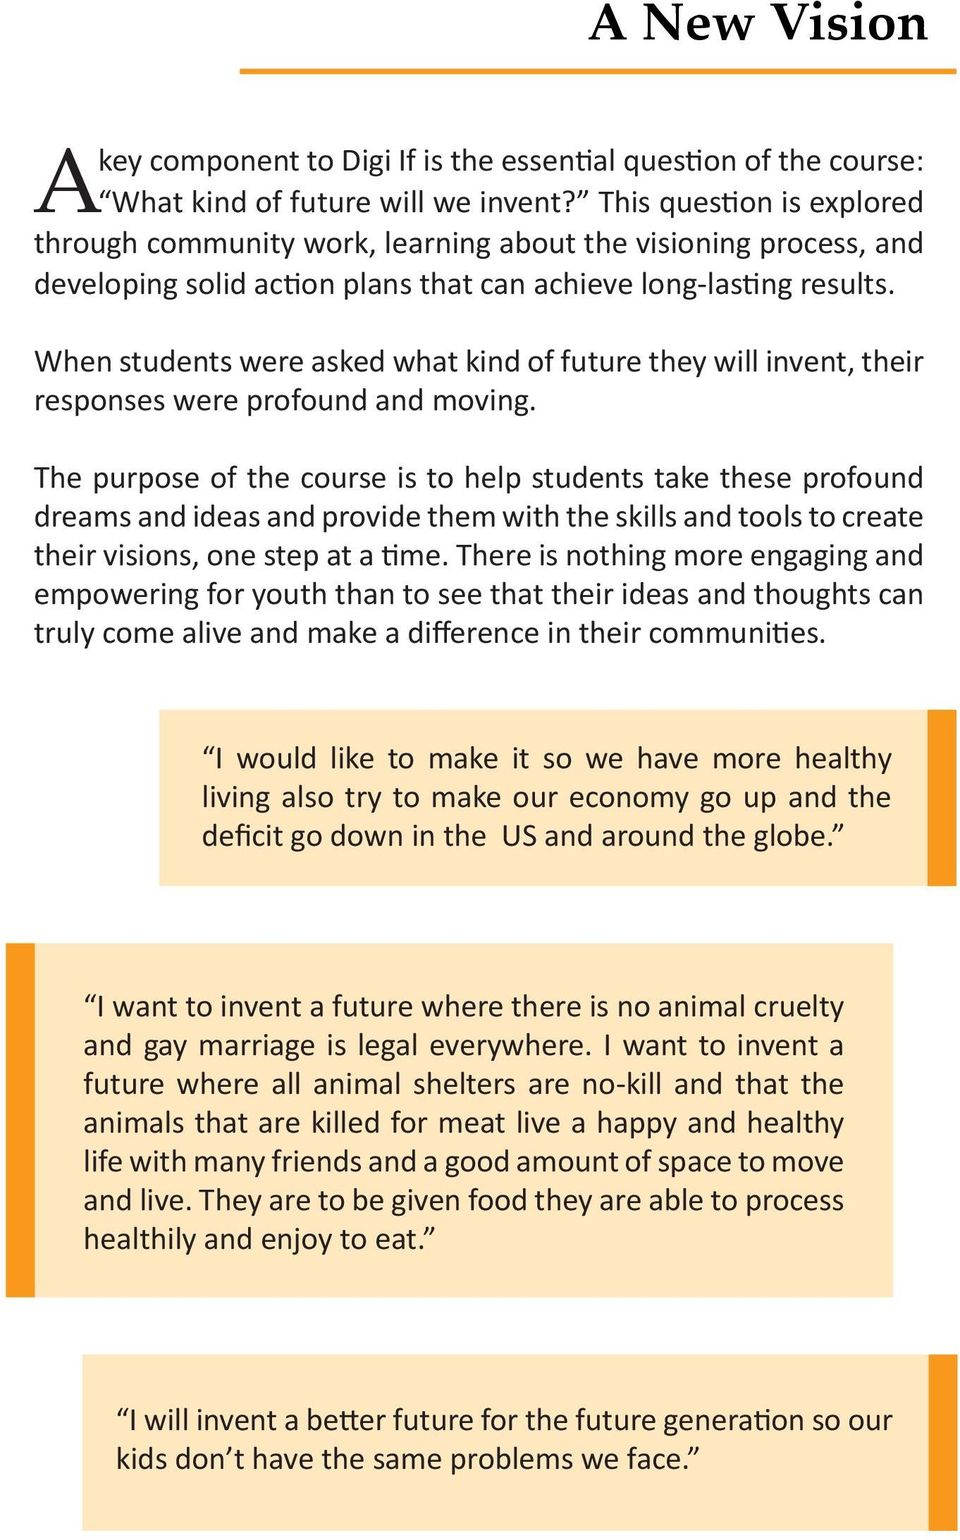 When students were asked what kind of future they will invent, their responses were profound and moving.